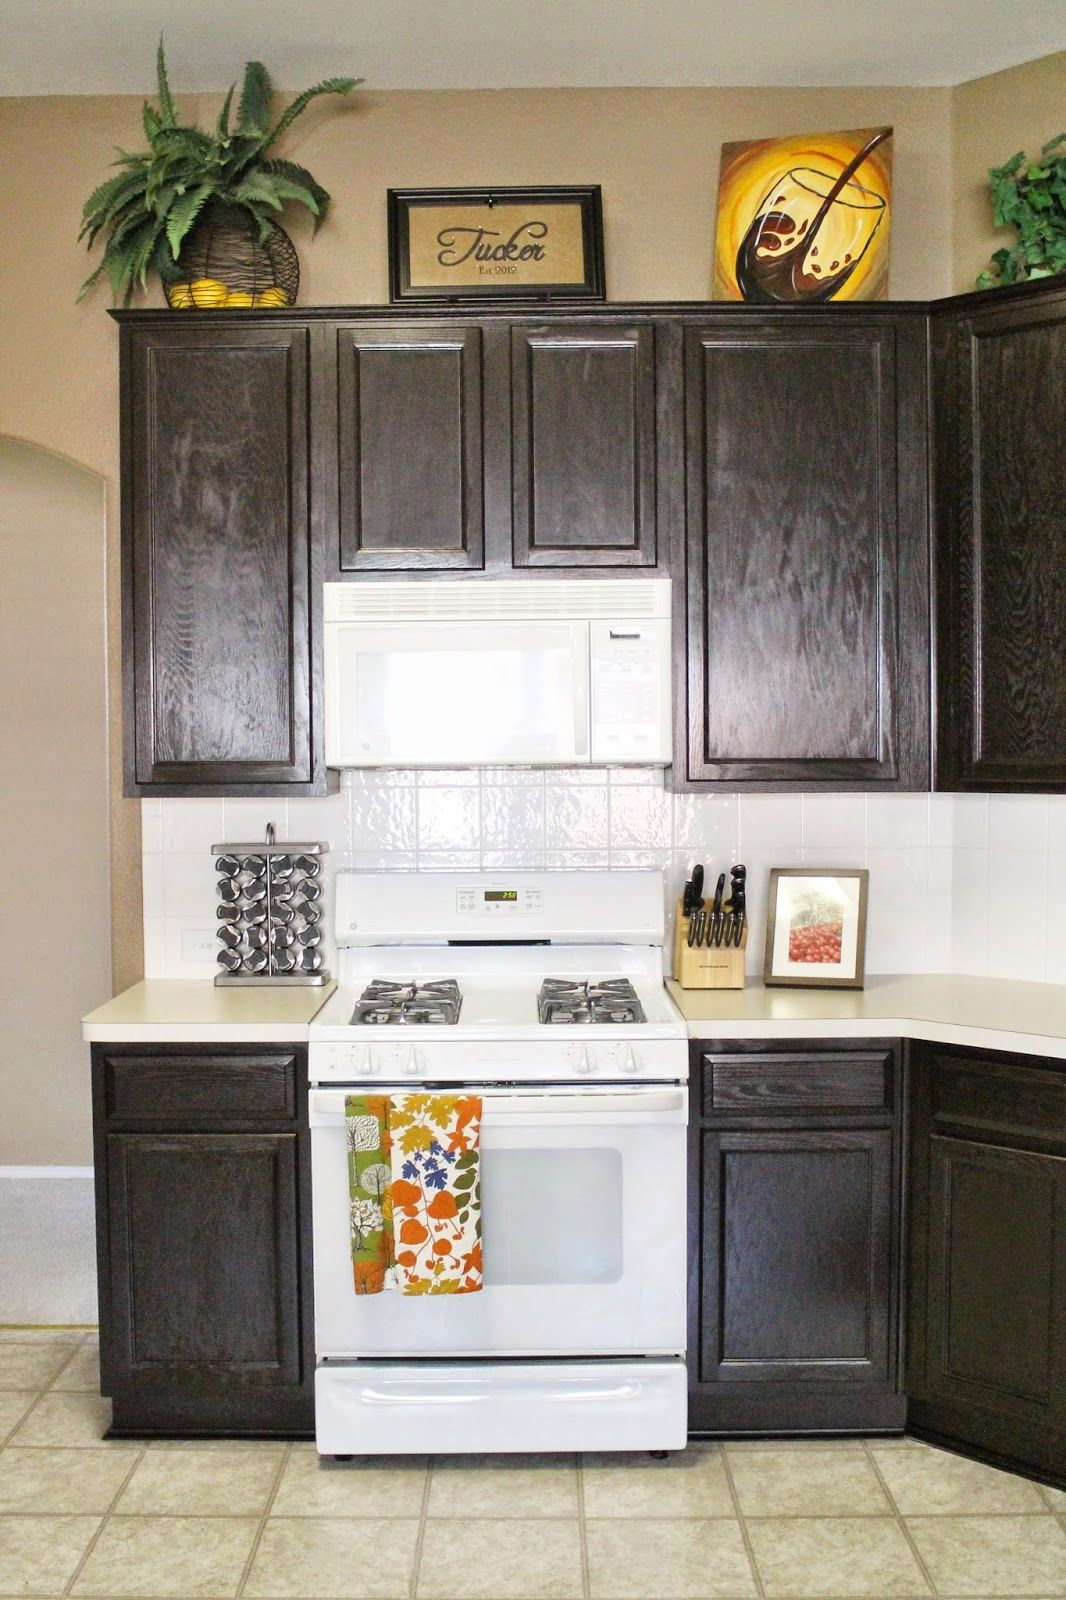 Kitchen Cabinet Reveal! | Home kitchens, Kitchen, Kitchen ...